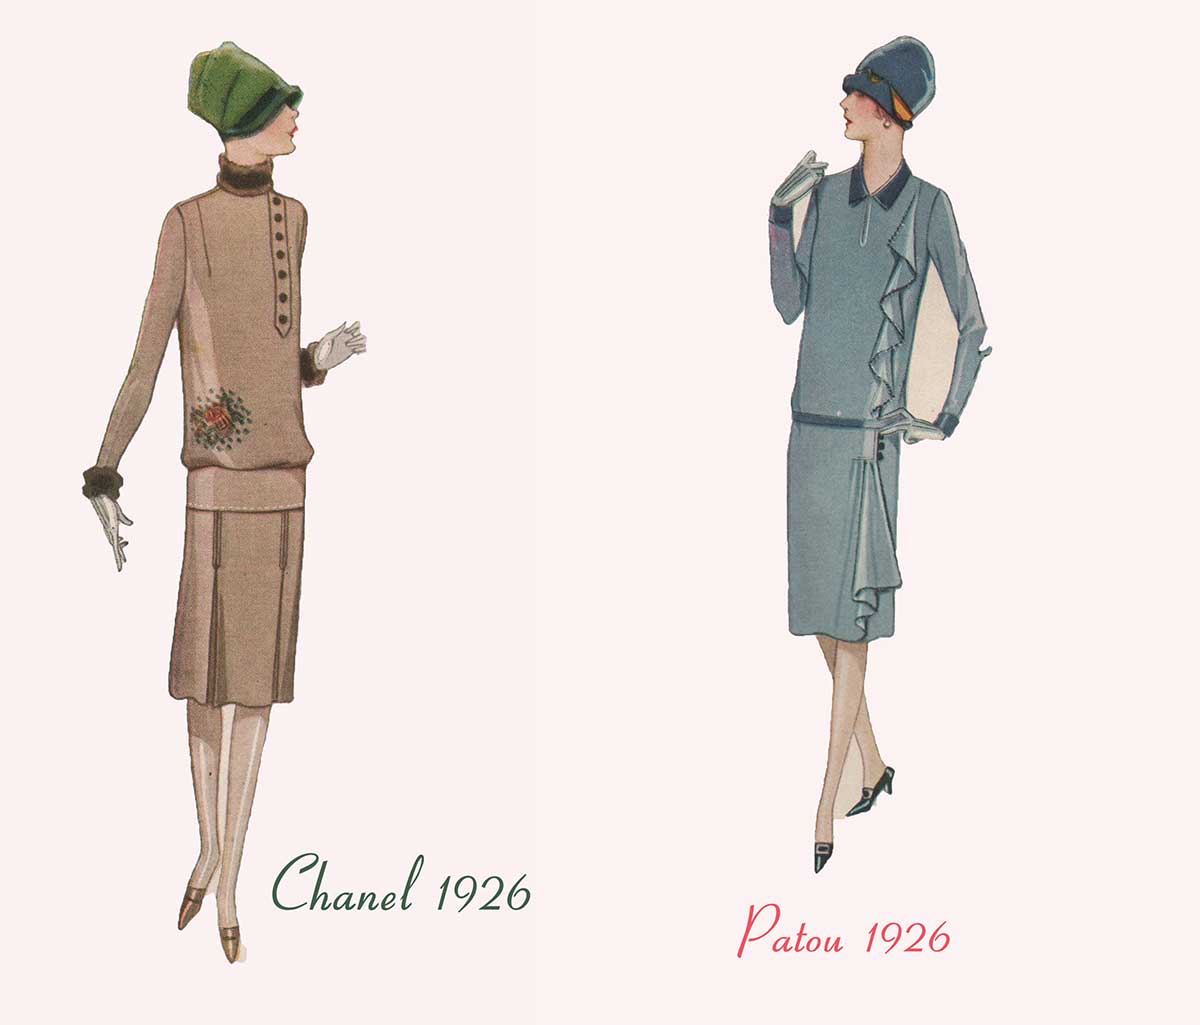 Designer Winter Fashion - Chanel and Patou